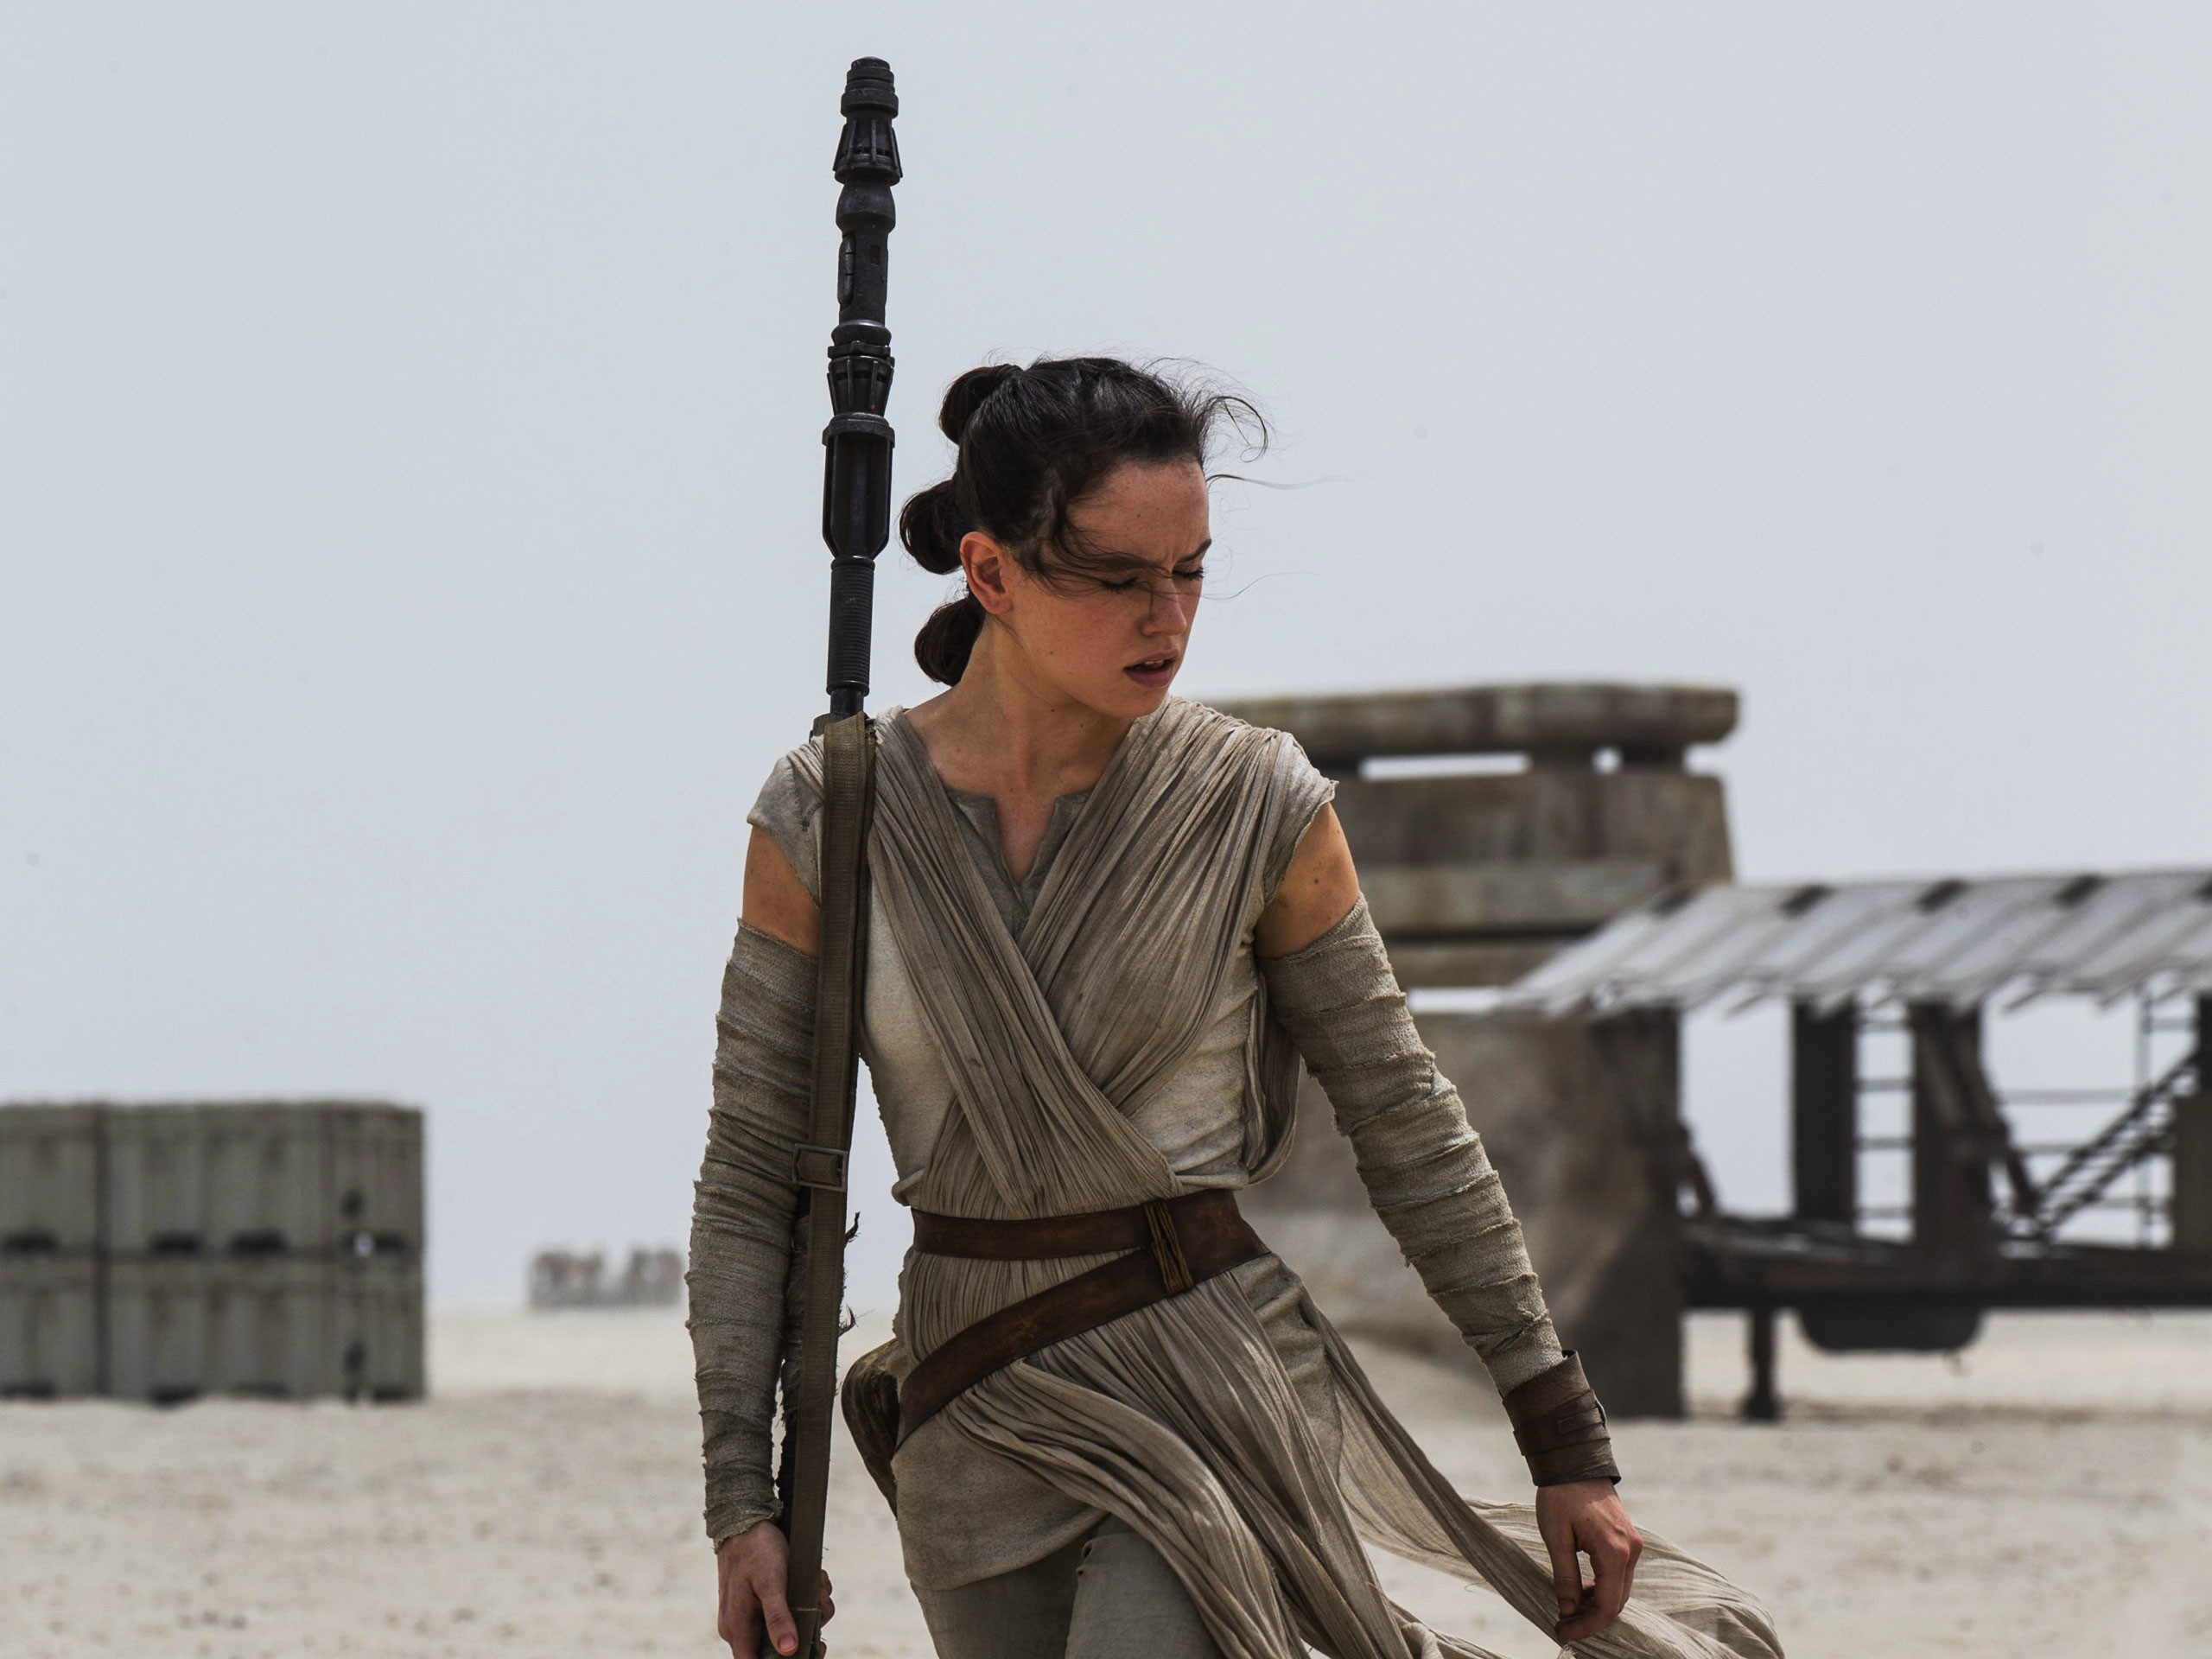 Rey from Star Wars 7: The Force Awakens wallpaper